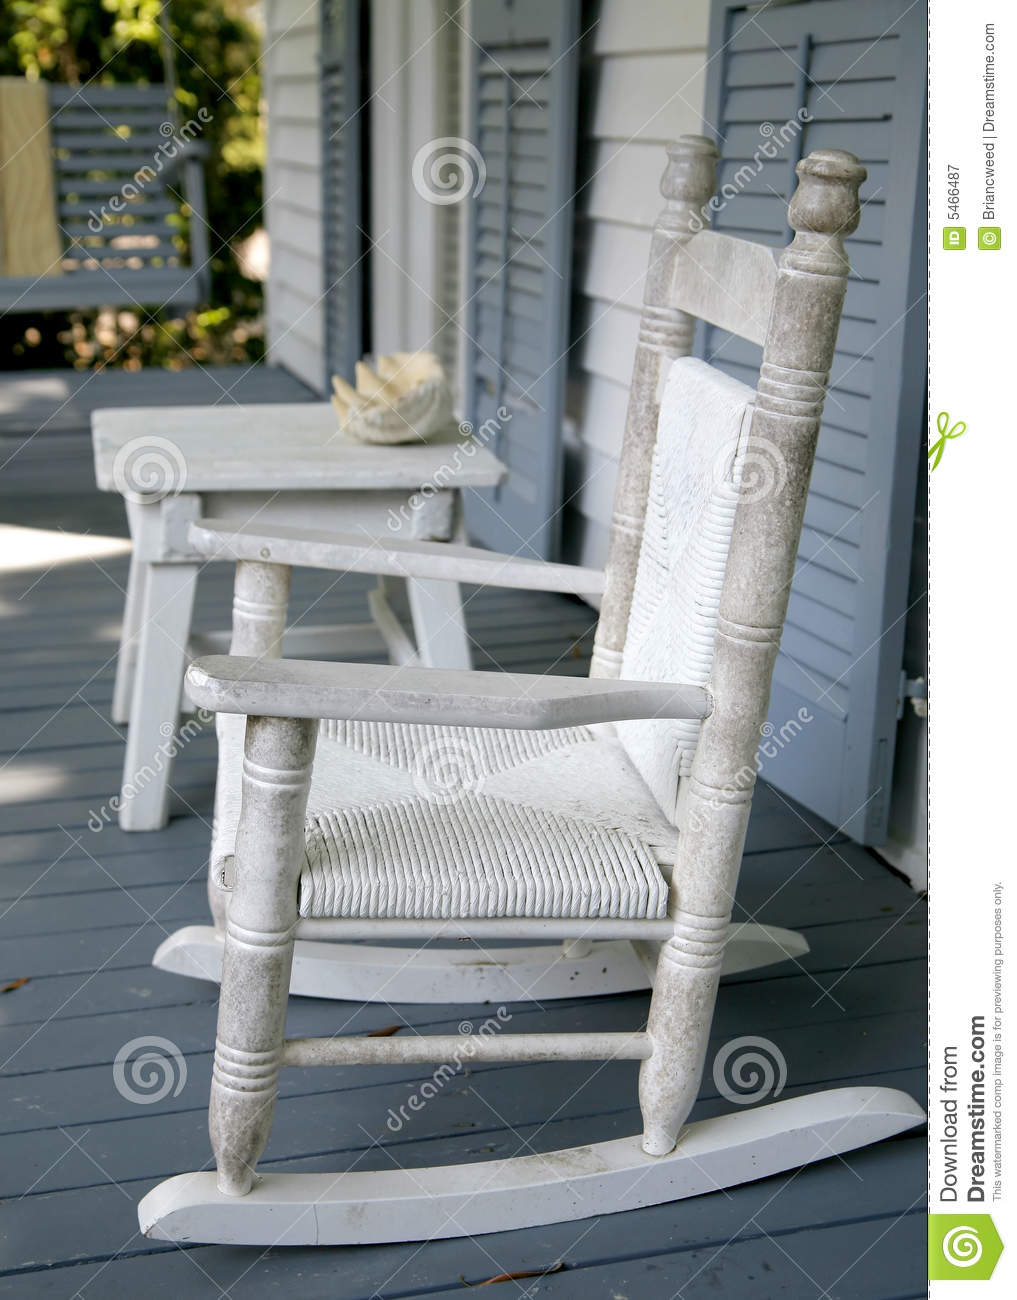 Pleasing Vintage Rocking Chair Stock Image Image Of Style Southern Gmtry Best Dining Table And Chair Ideas Images Gmtryco